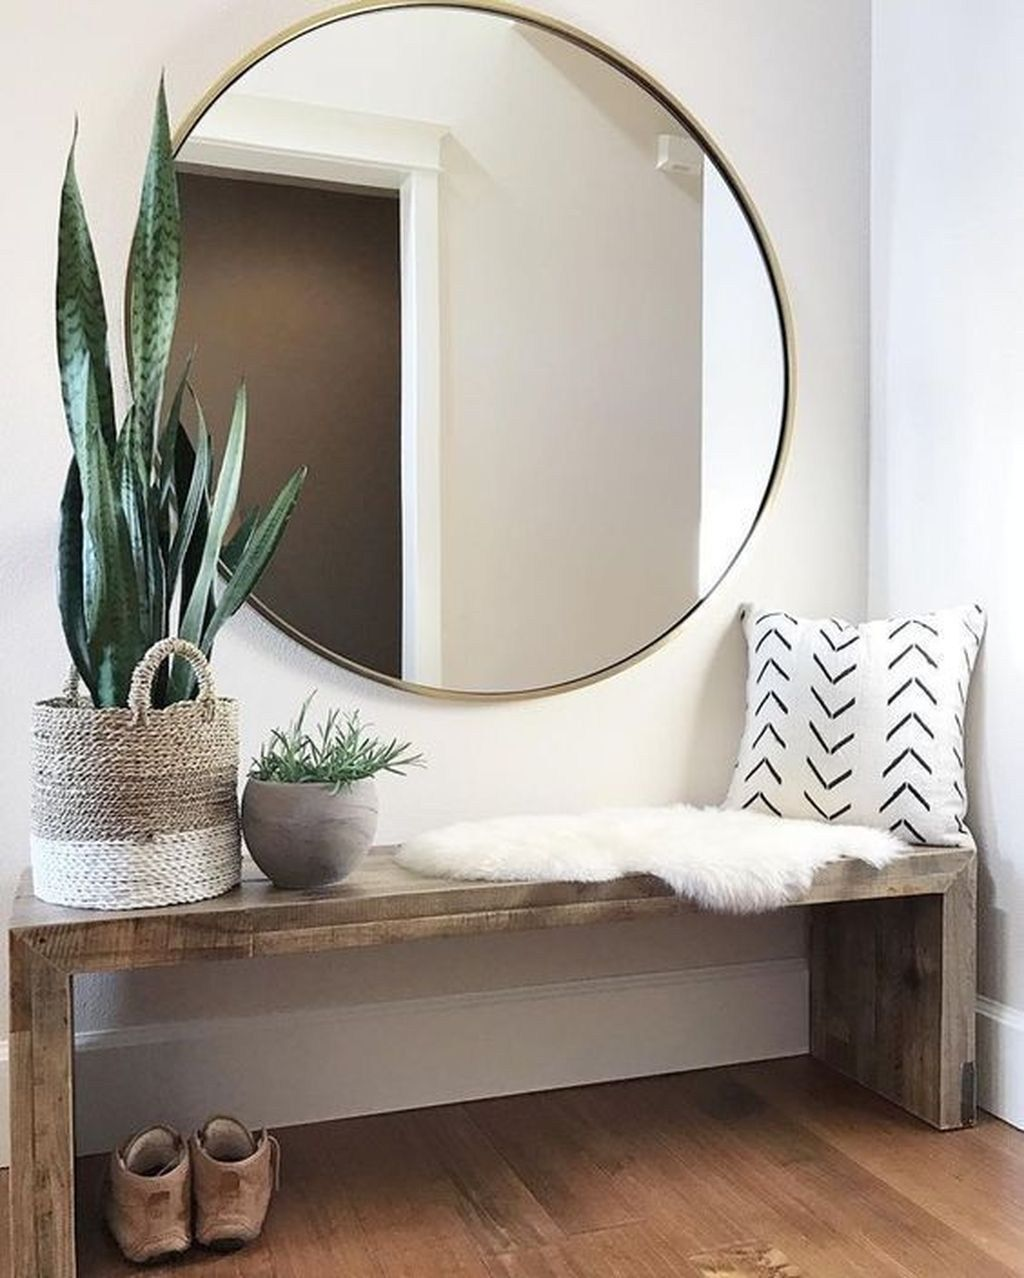 50 The Best Living Room Decorating Ideas Trends 2019 is part of  - A viable decoration of a room to a great extent relies upon its size and shape and mostly the reason for which it will be utilized  Living room decoration can Read More